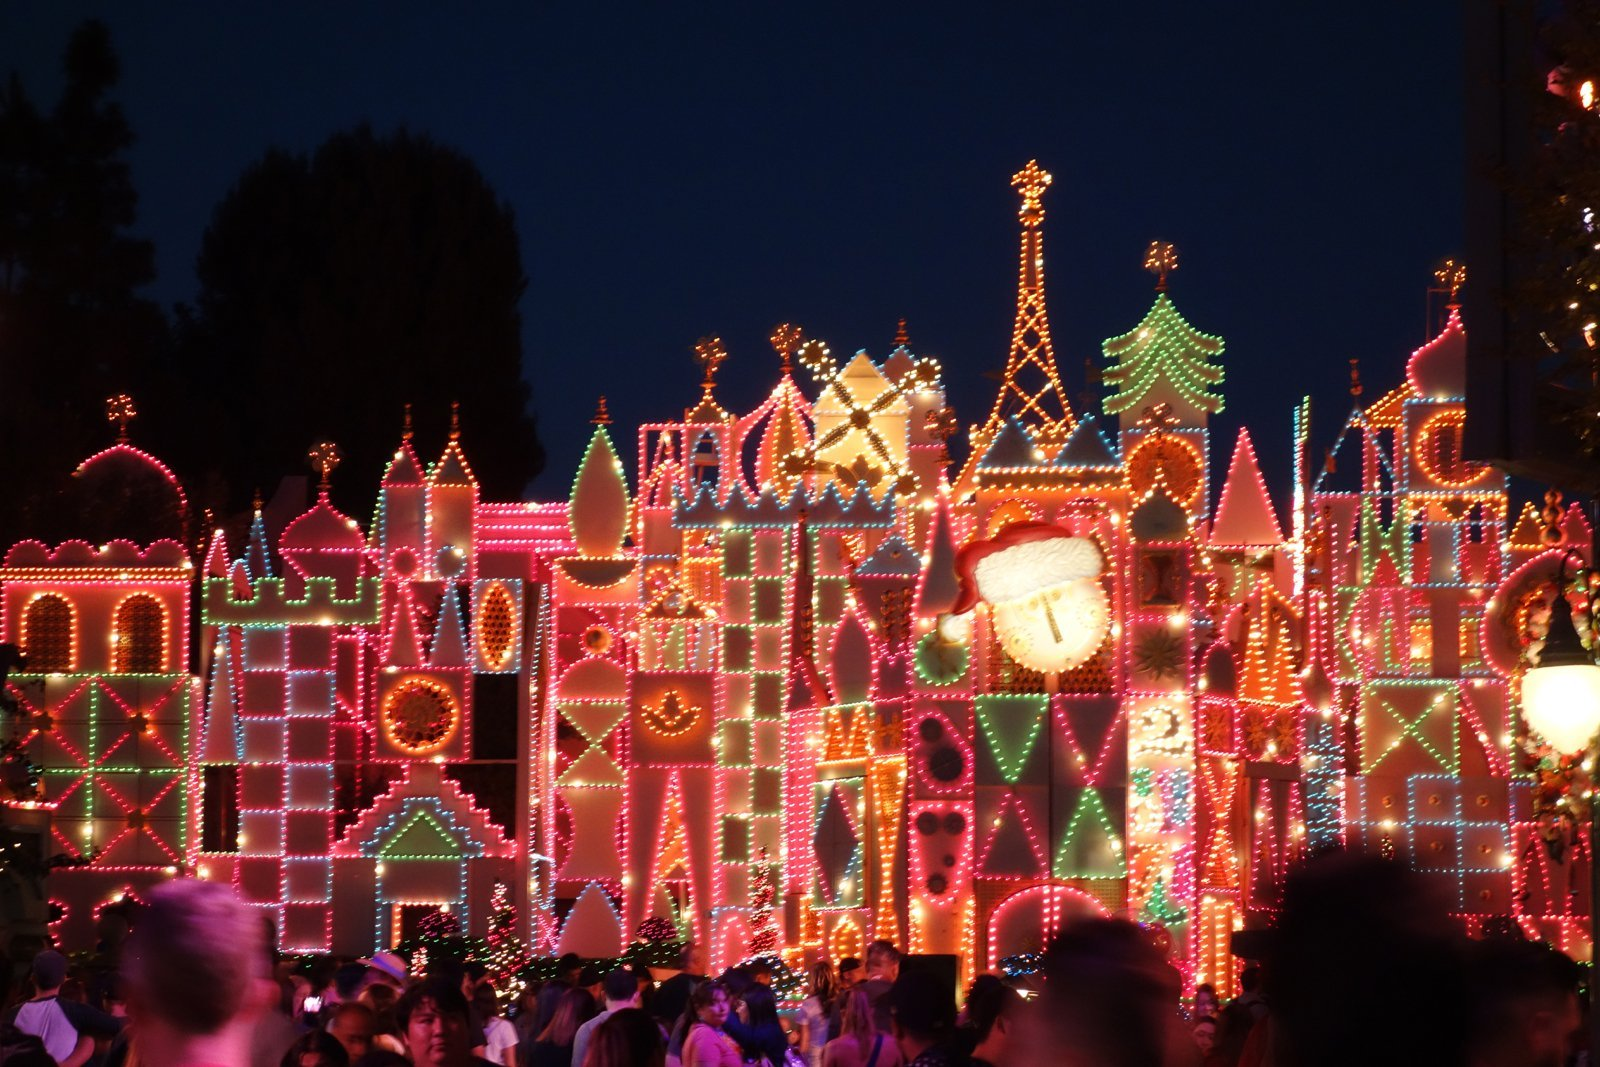 5 Reasons You Will Love the Holidays at Disneyland